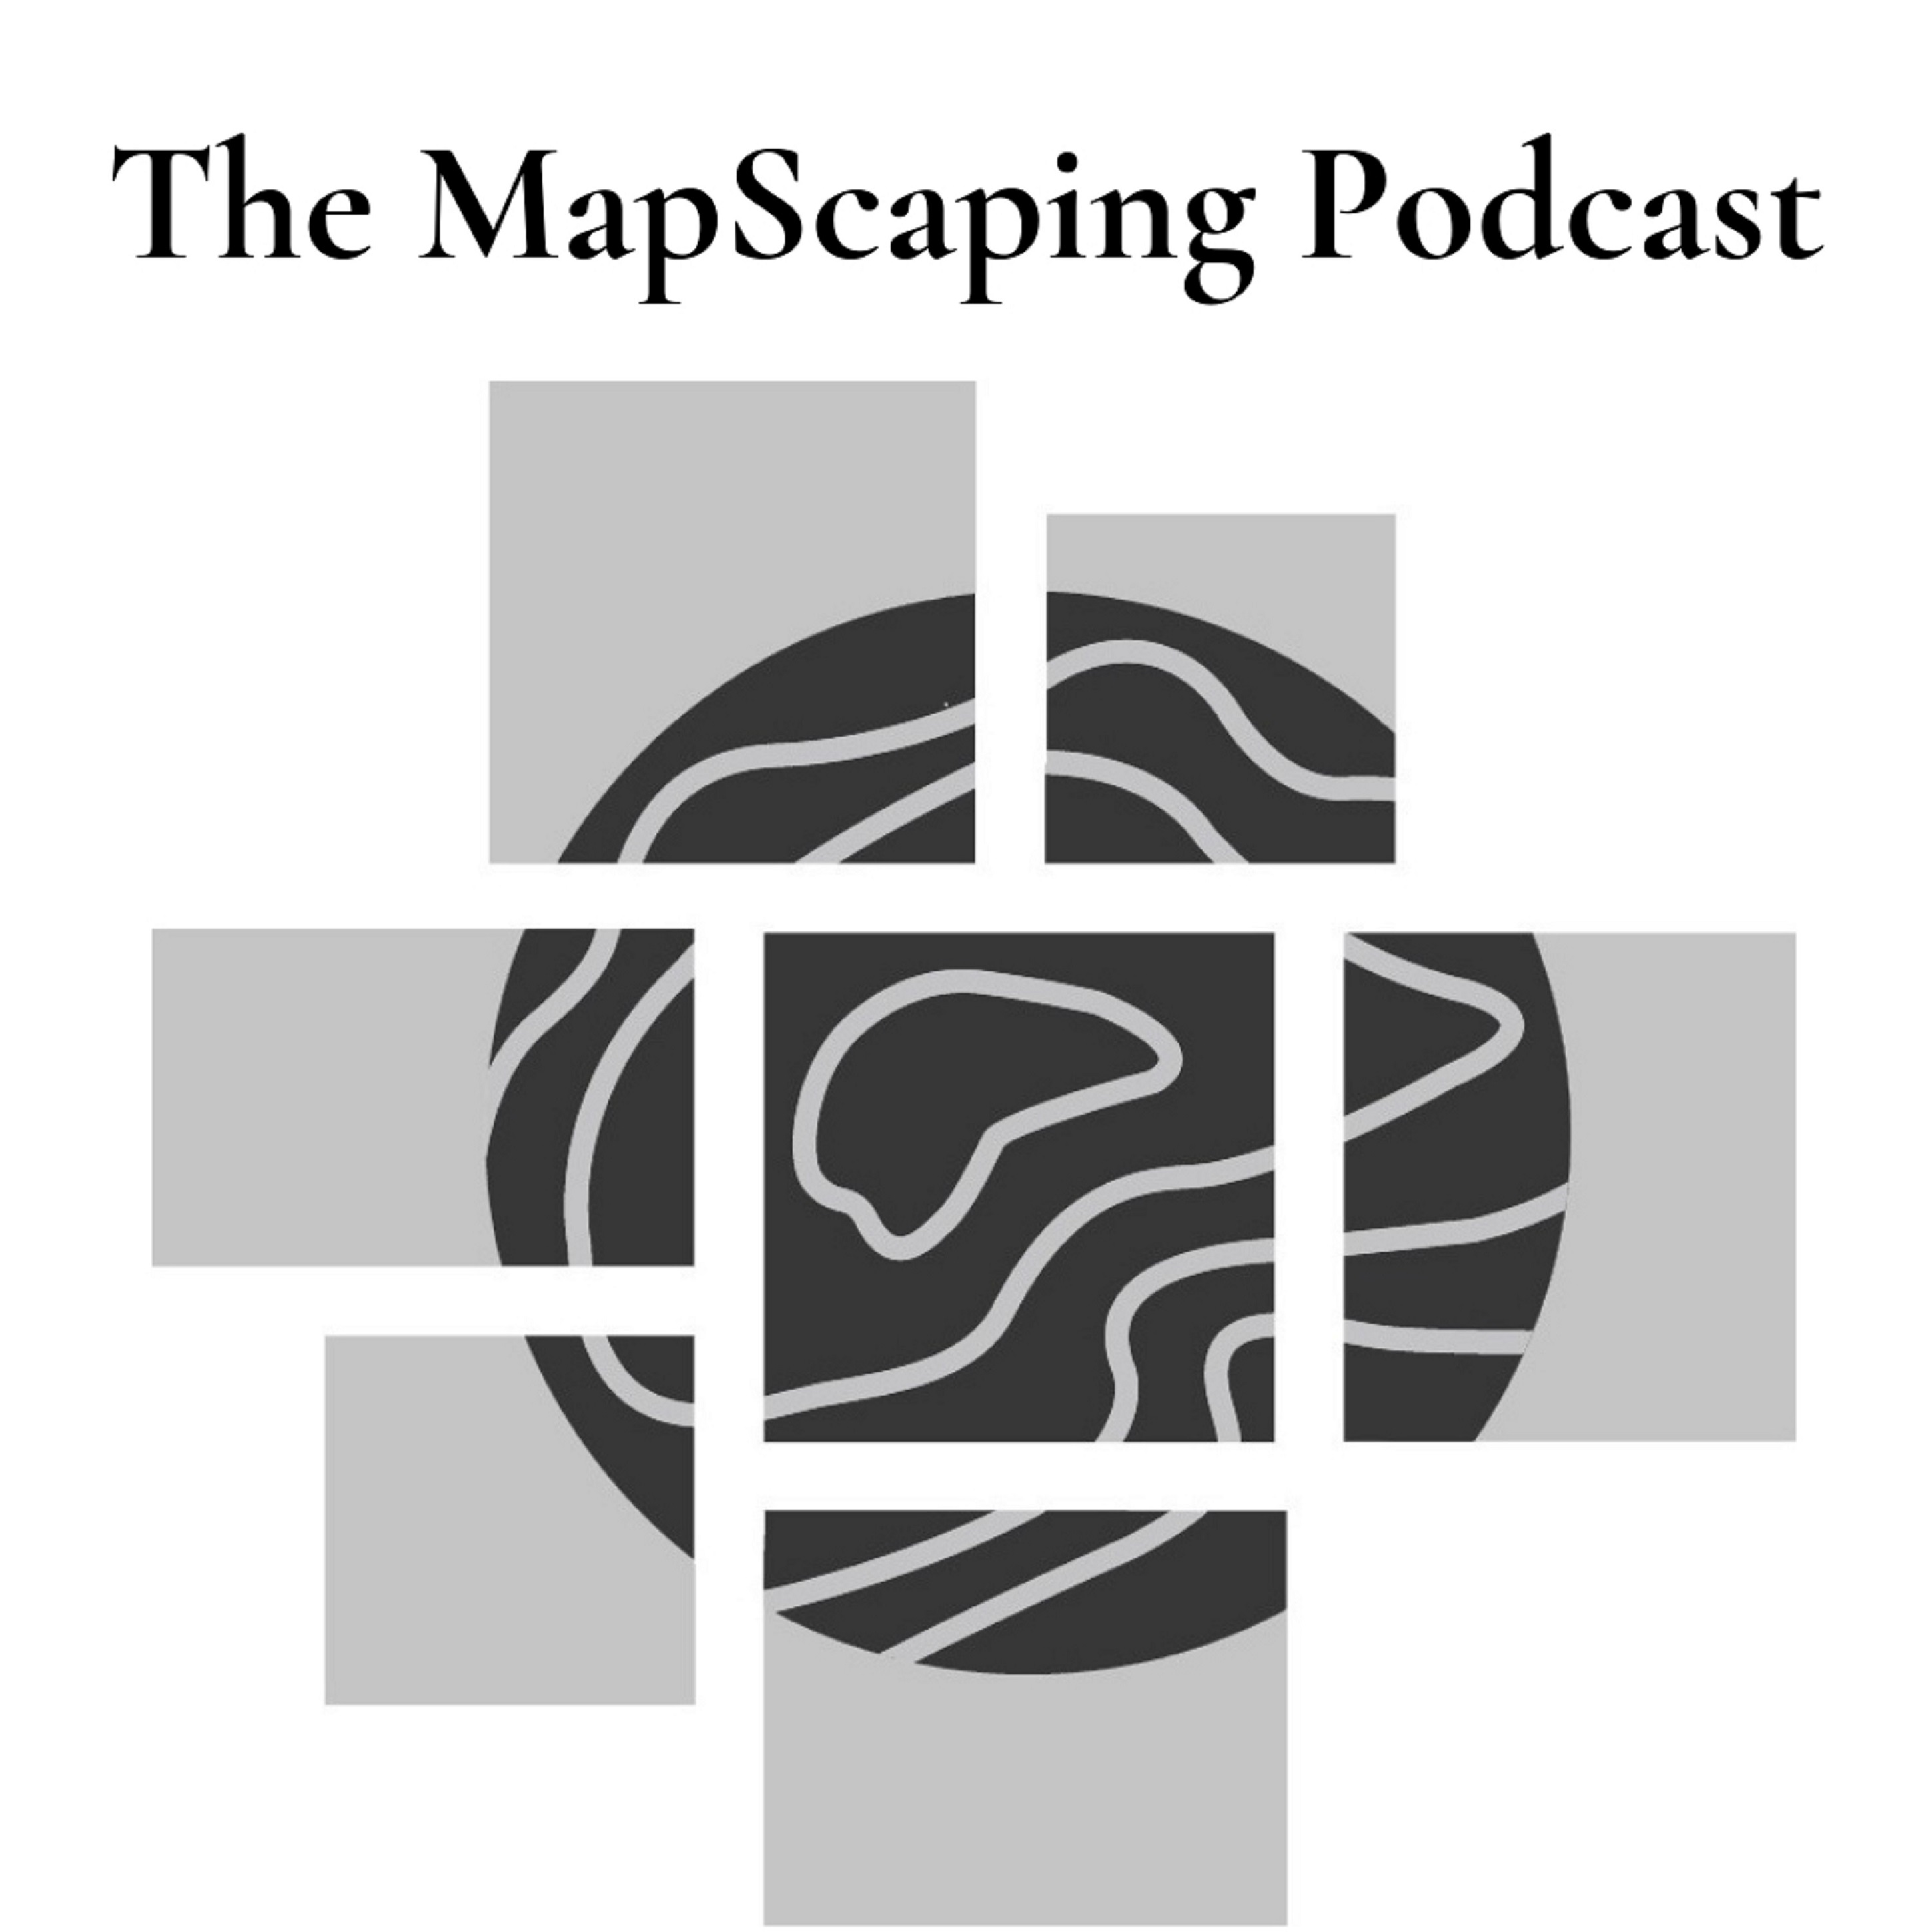 The MapScaping Podcast - GIS, Geospatial, Remote Sensing, earth observation and digital geography podcast show image